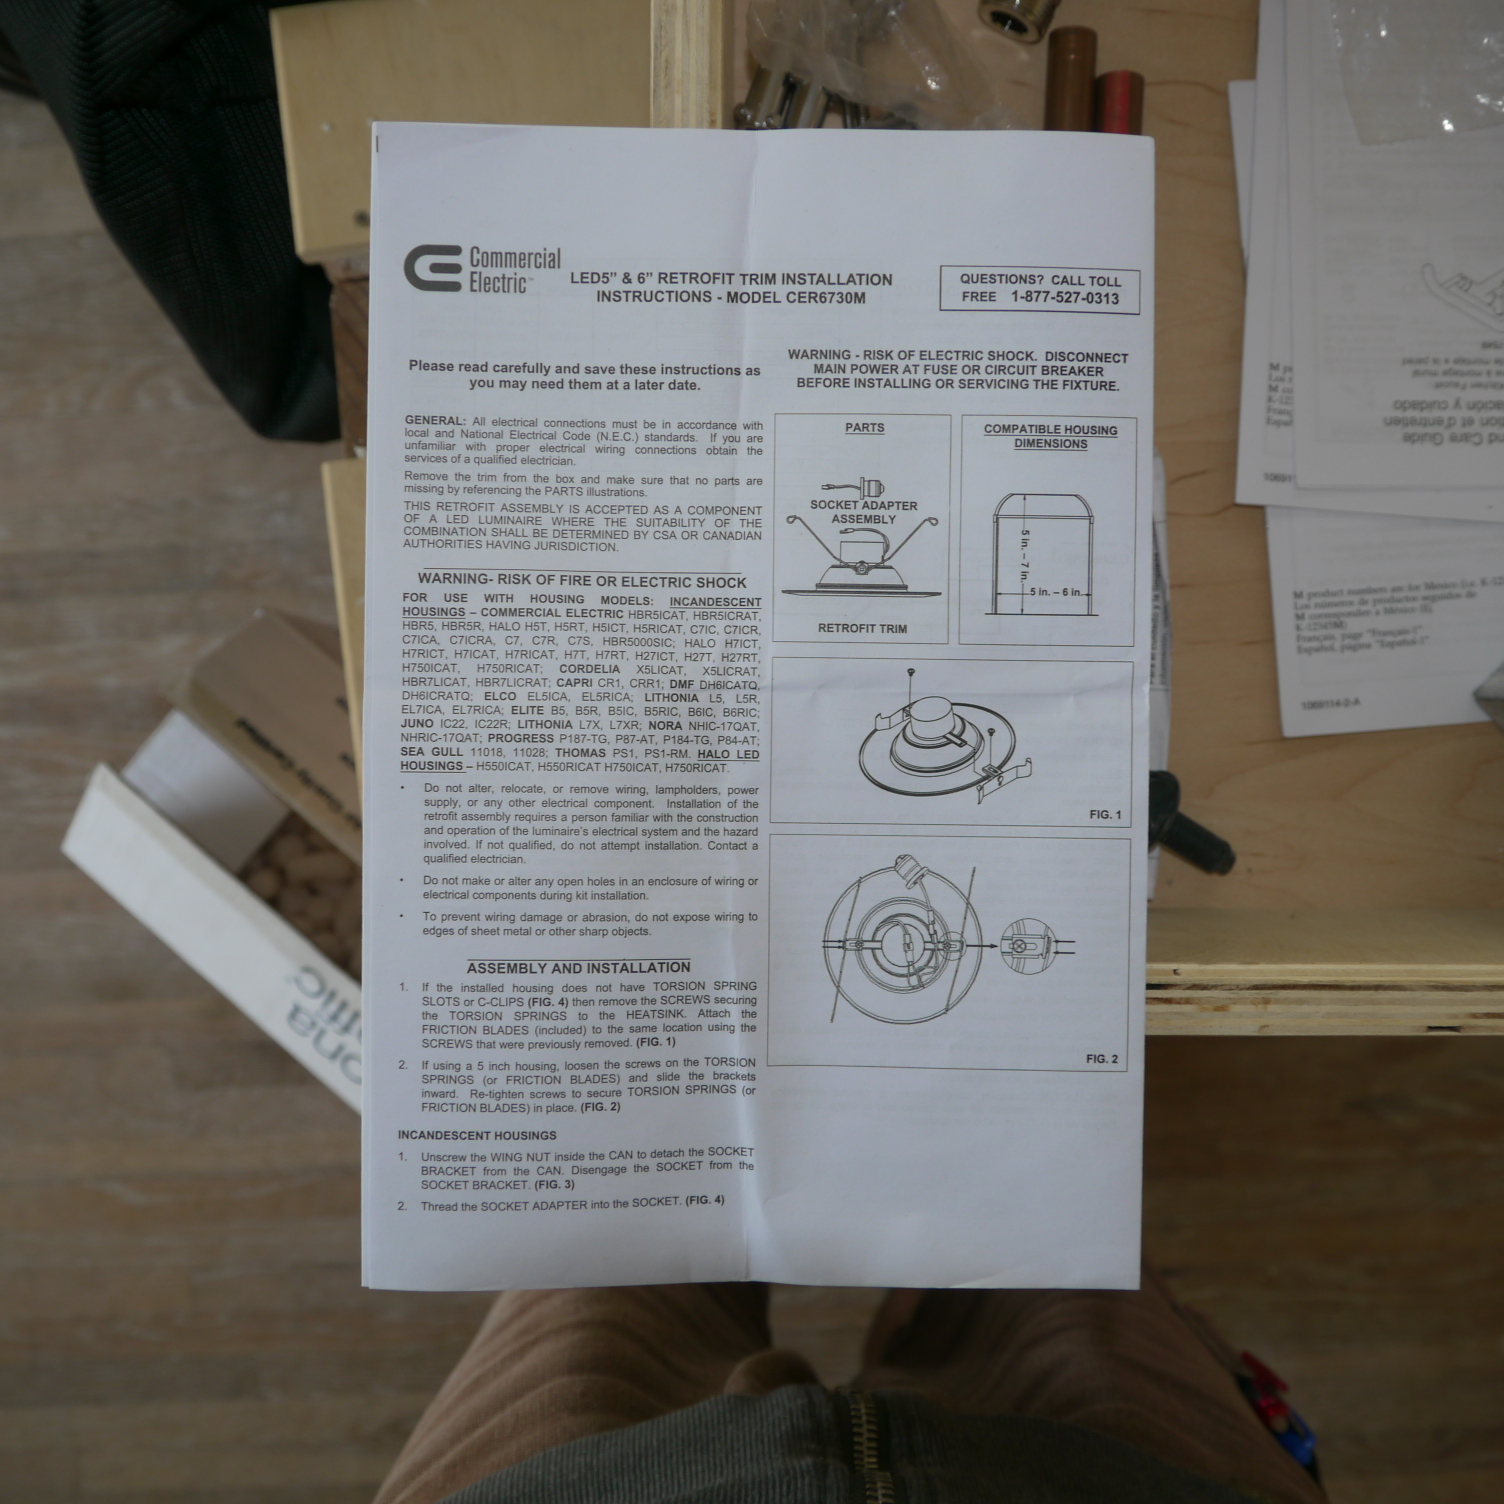 Best Commercial Electric Recessed Lighting Installation Instructions ...